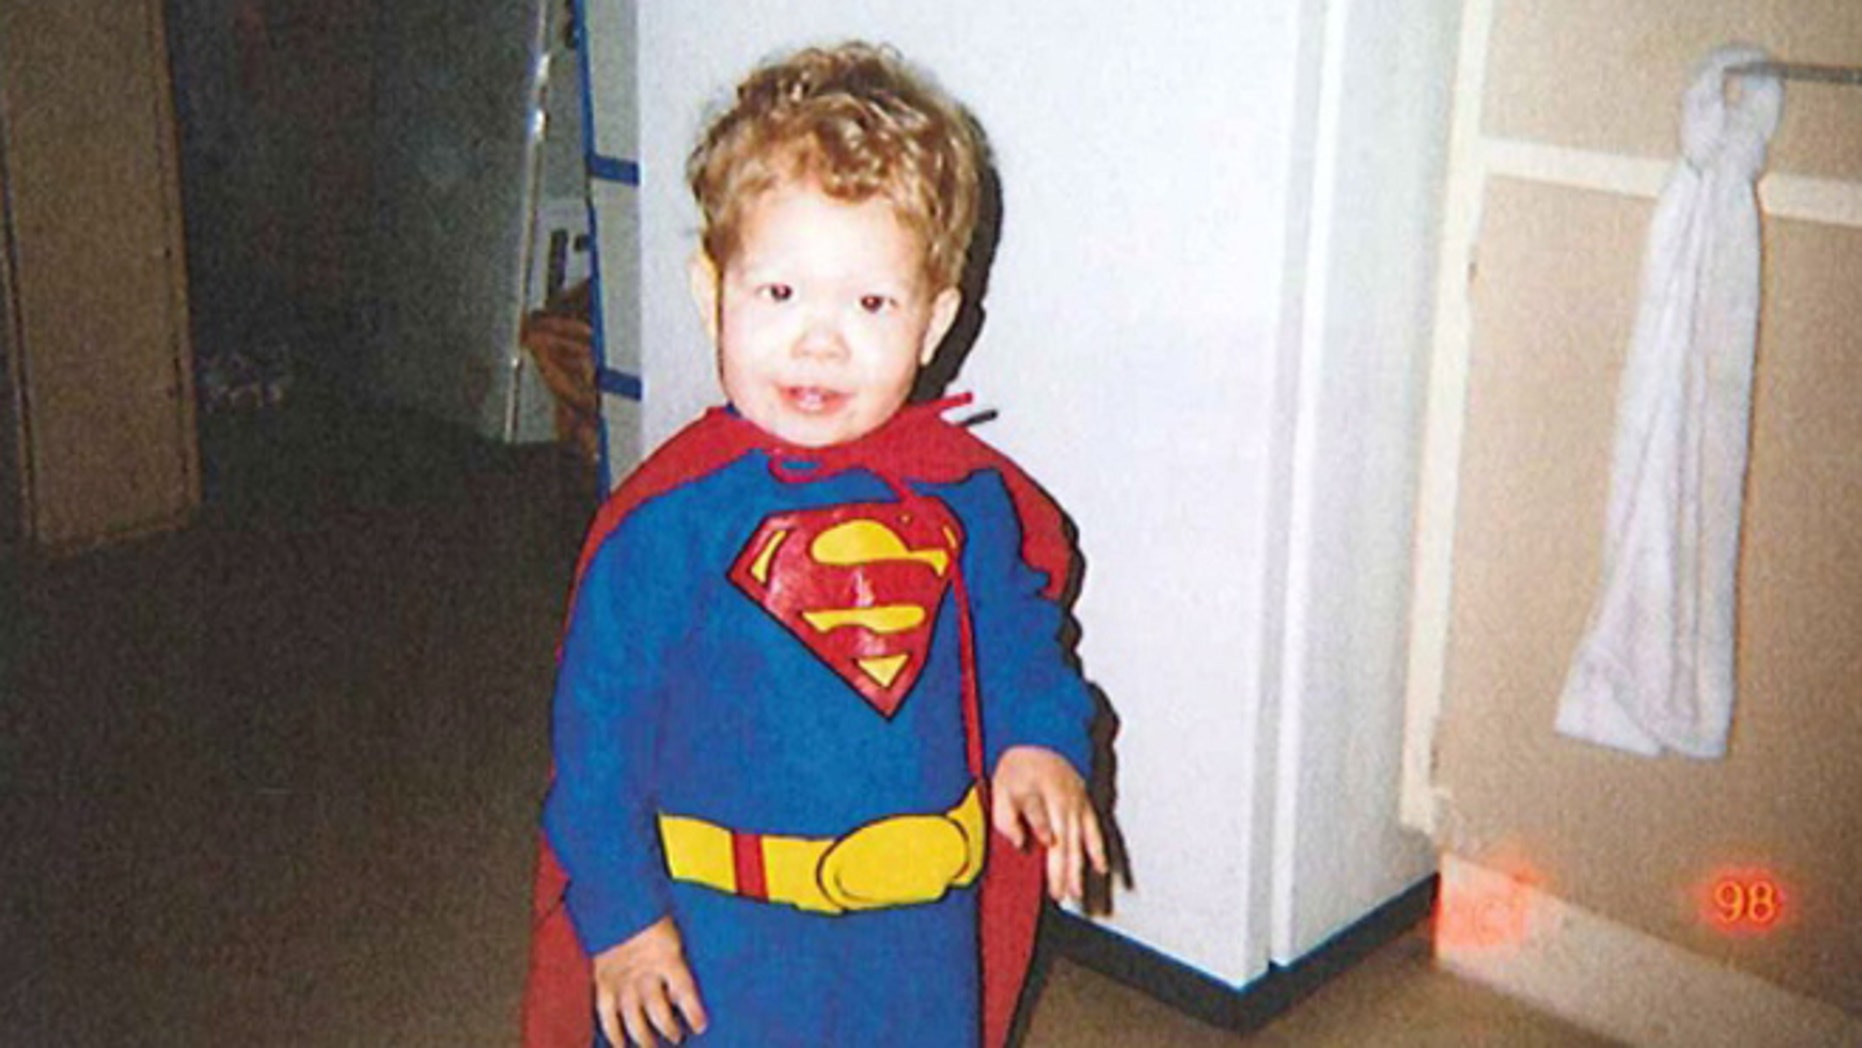 Jeffrey Baldwin is seen in a Halloween costume in this undated handout photo released at the inquest into his death last year. DC Entertainment is reportedly refusing to allow a memorial statue of Baldwin to feature the logo.